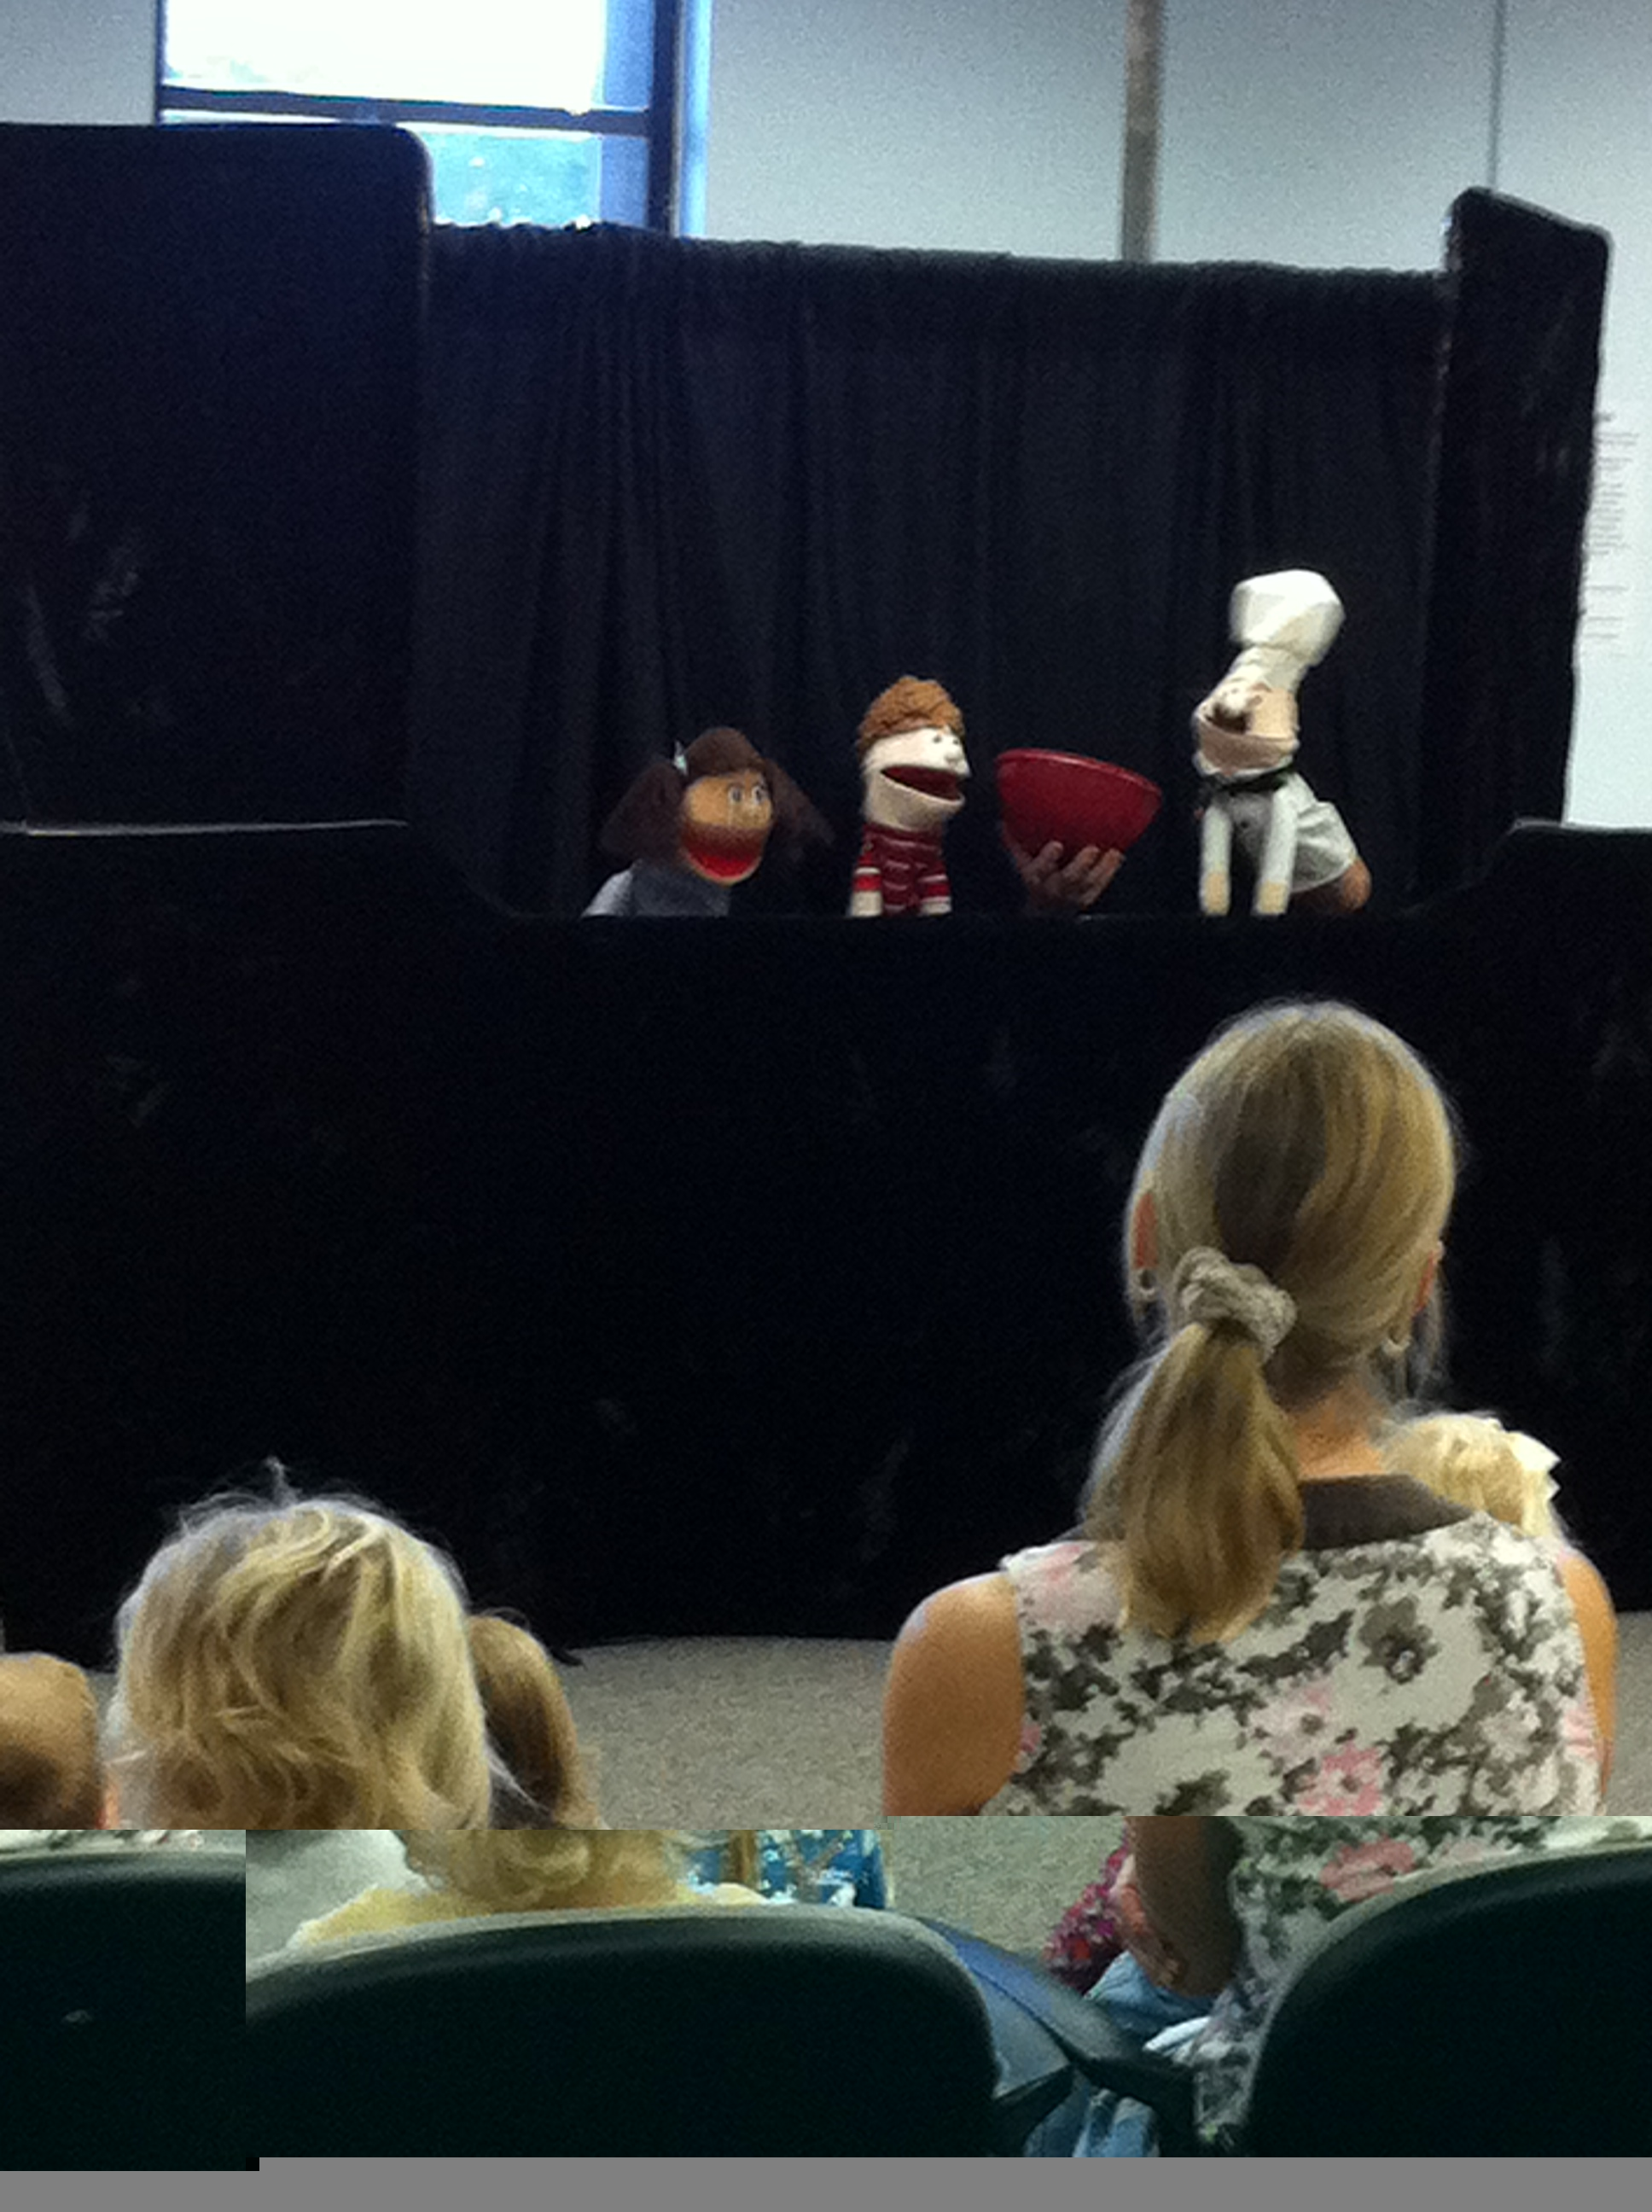 A puppet dressed as a chef presents a bowl to the other puppets